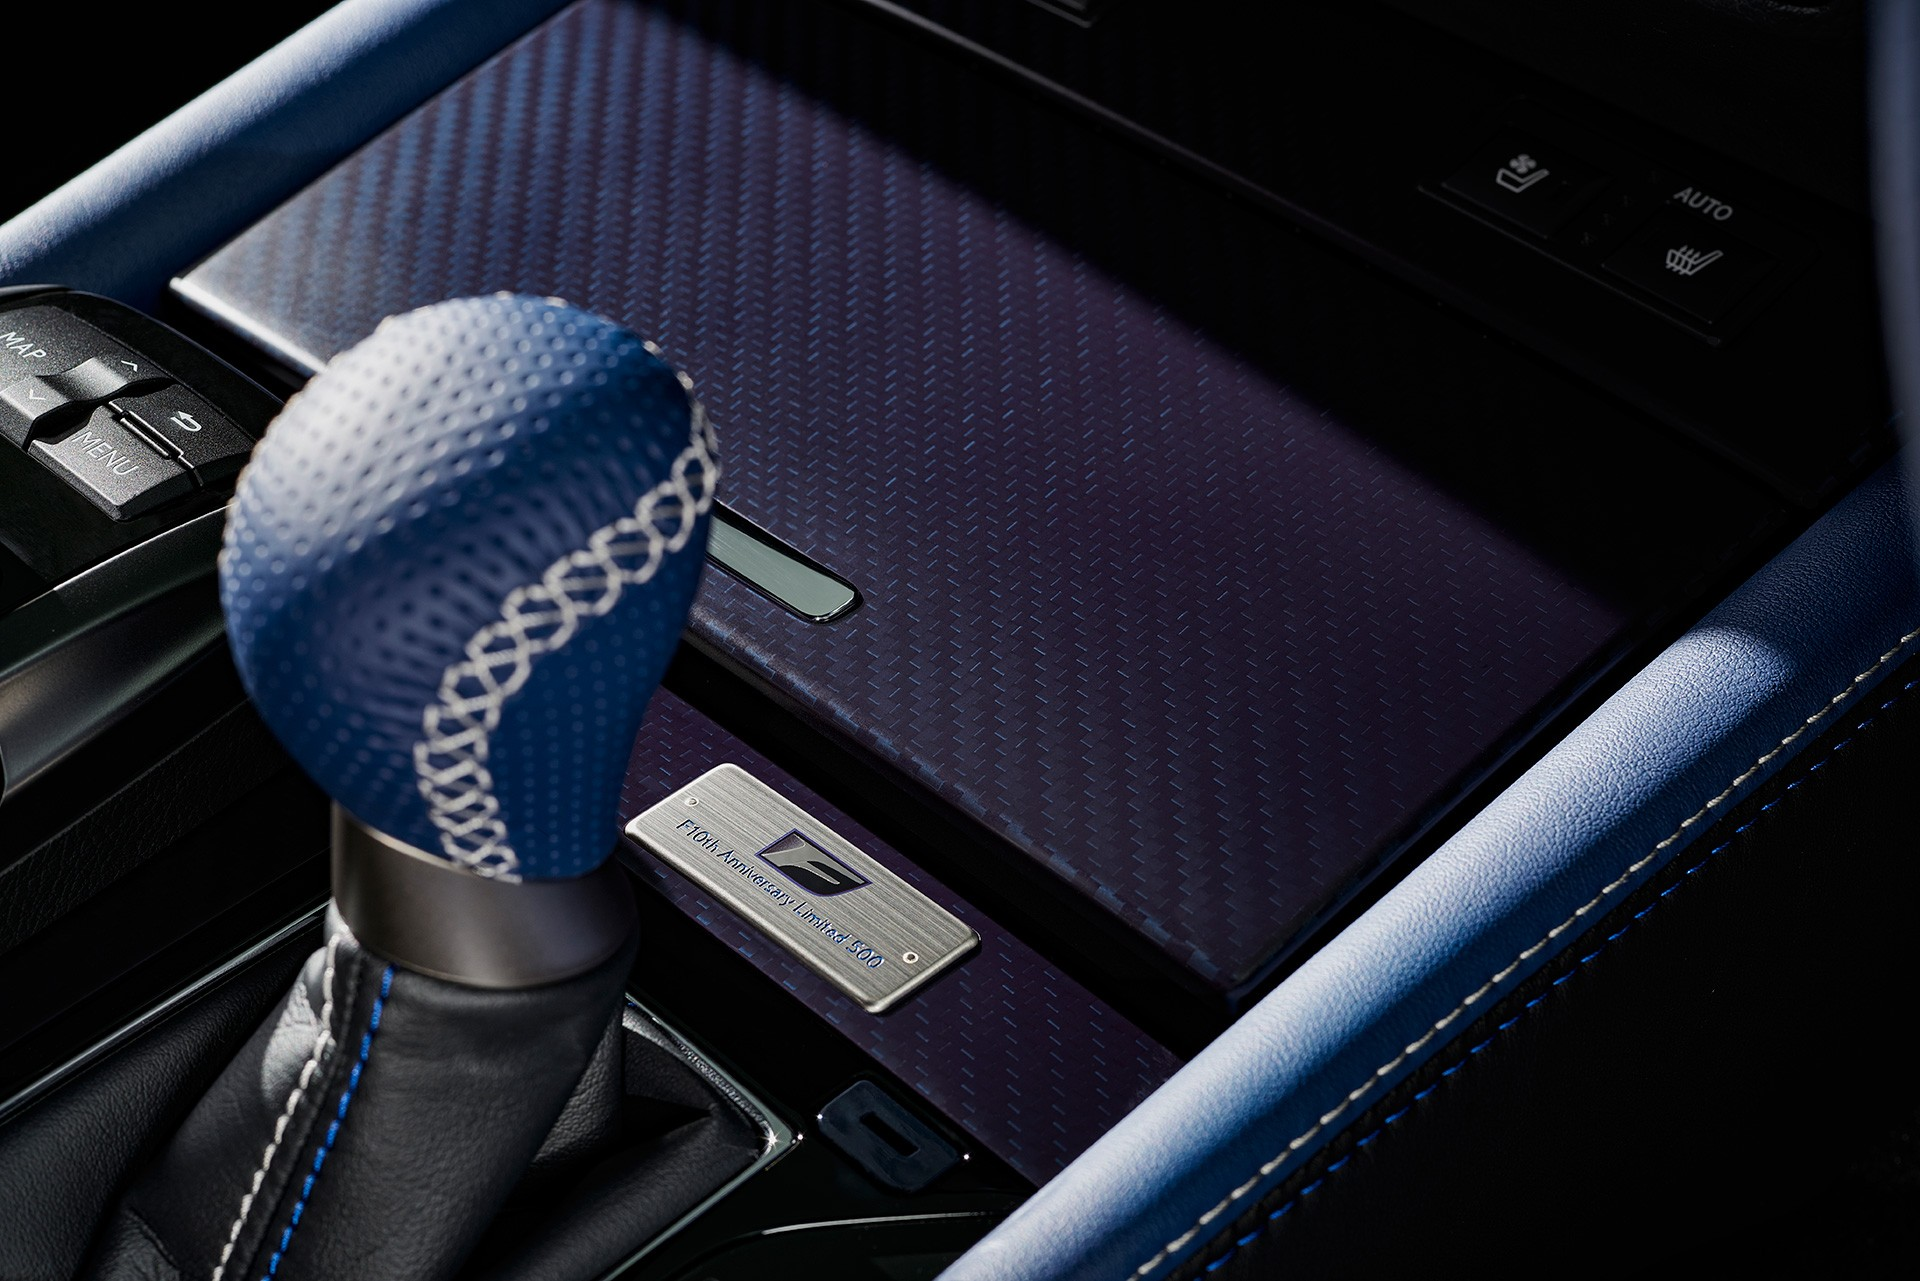 Lexus RC F, GS F special editions (31)